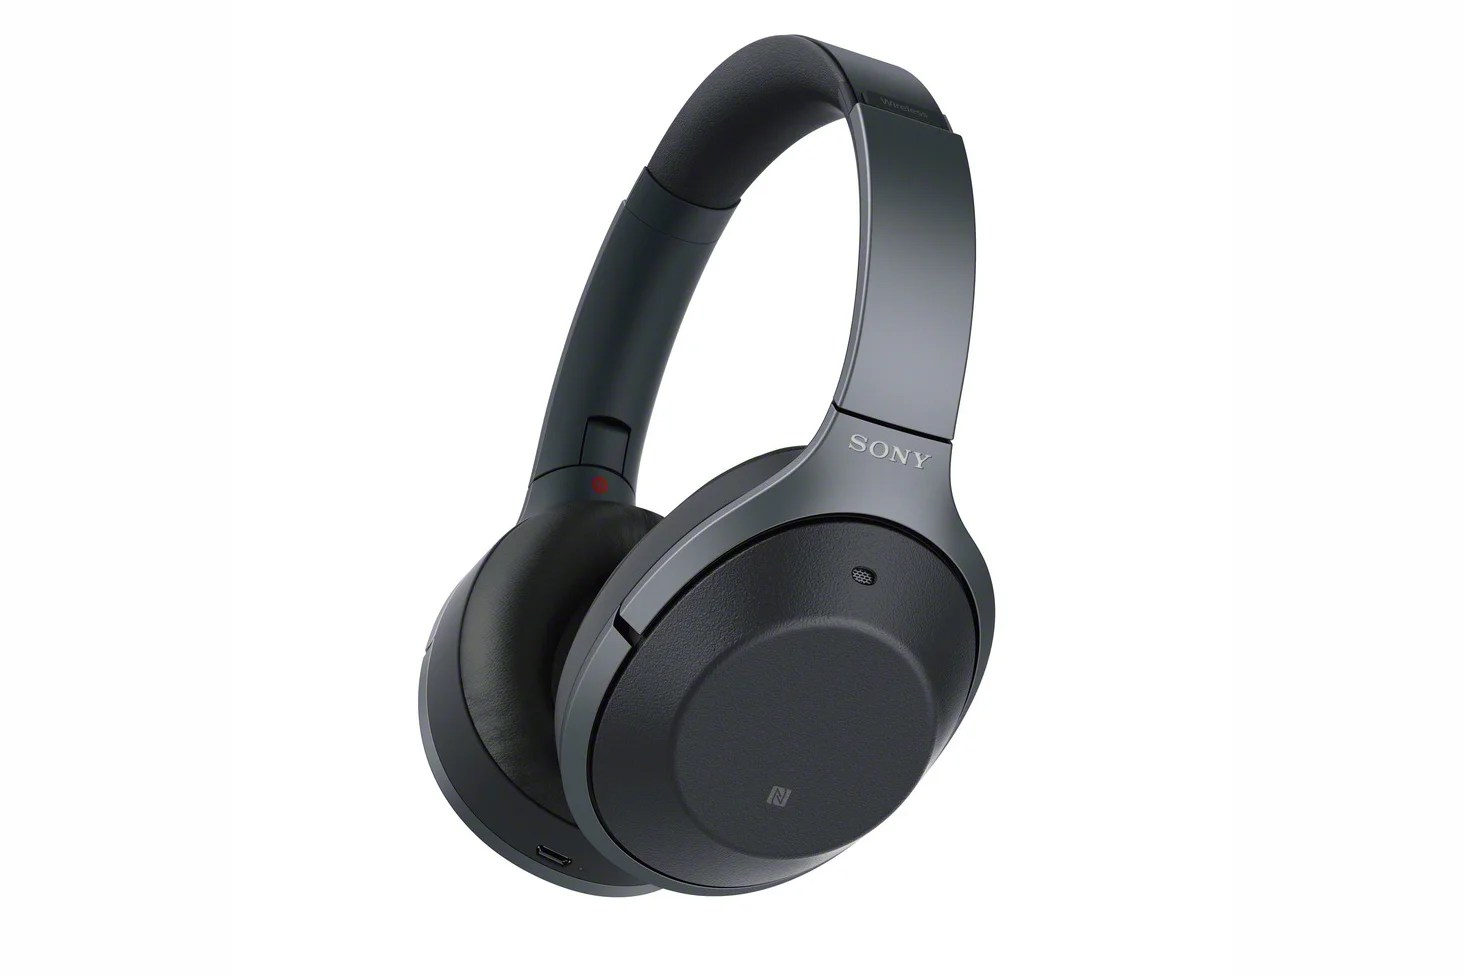 Sony WH-1000XM2 hands-on | Trusted Reviews